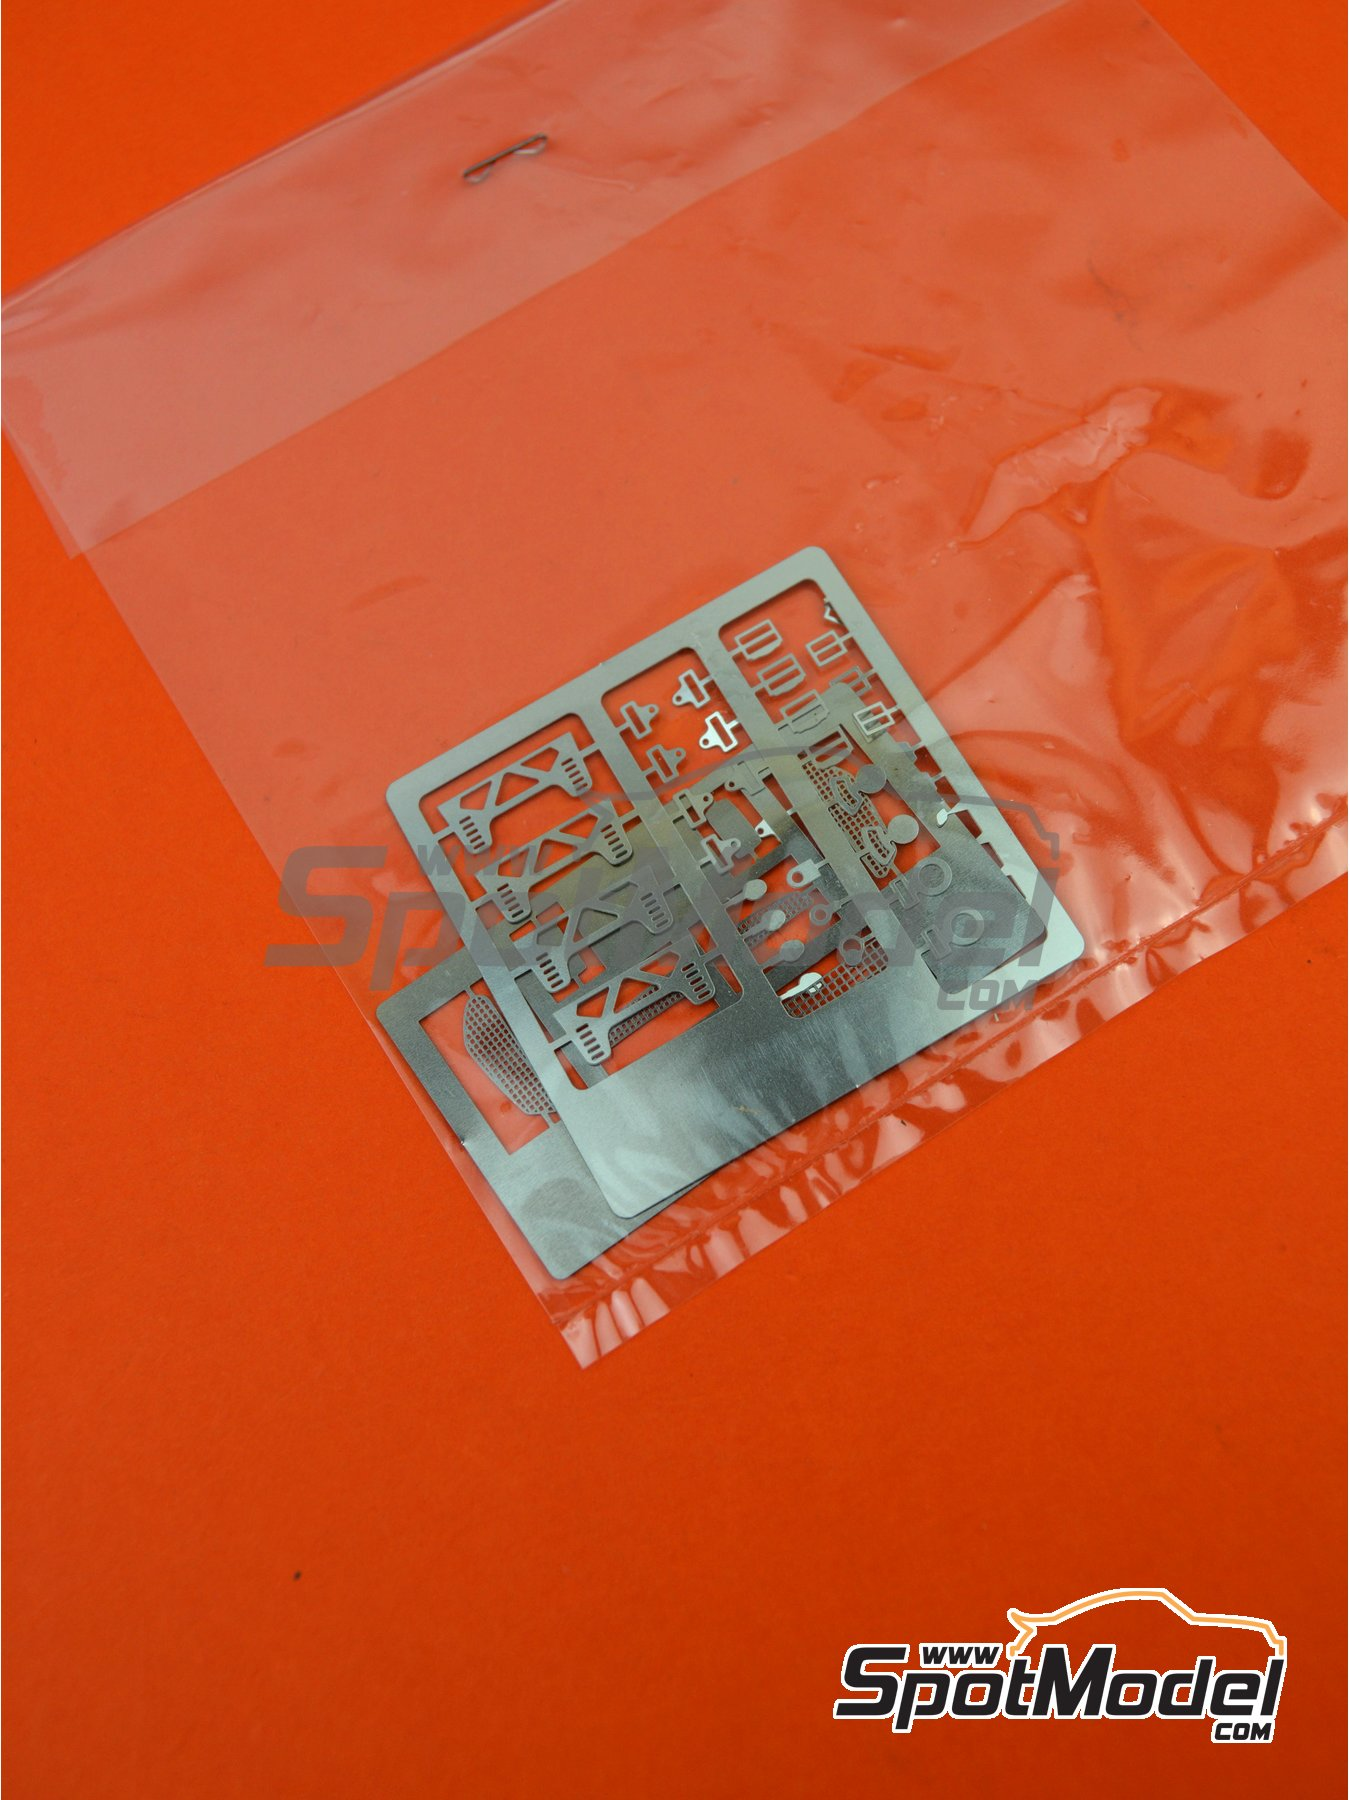 Skoda Fabia S2000 Evo: Photoetched parts | Spare part in 1/24 scale manufactured by Belkits (ref. BEL-004-PHOTOETCH) image